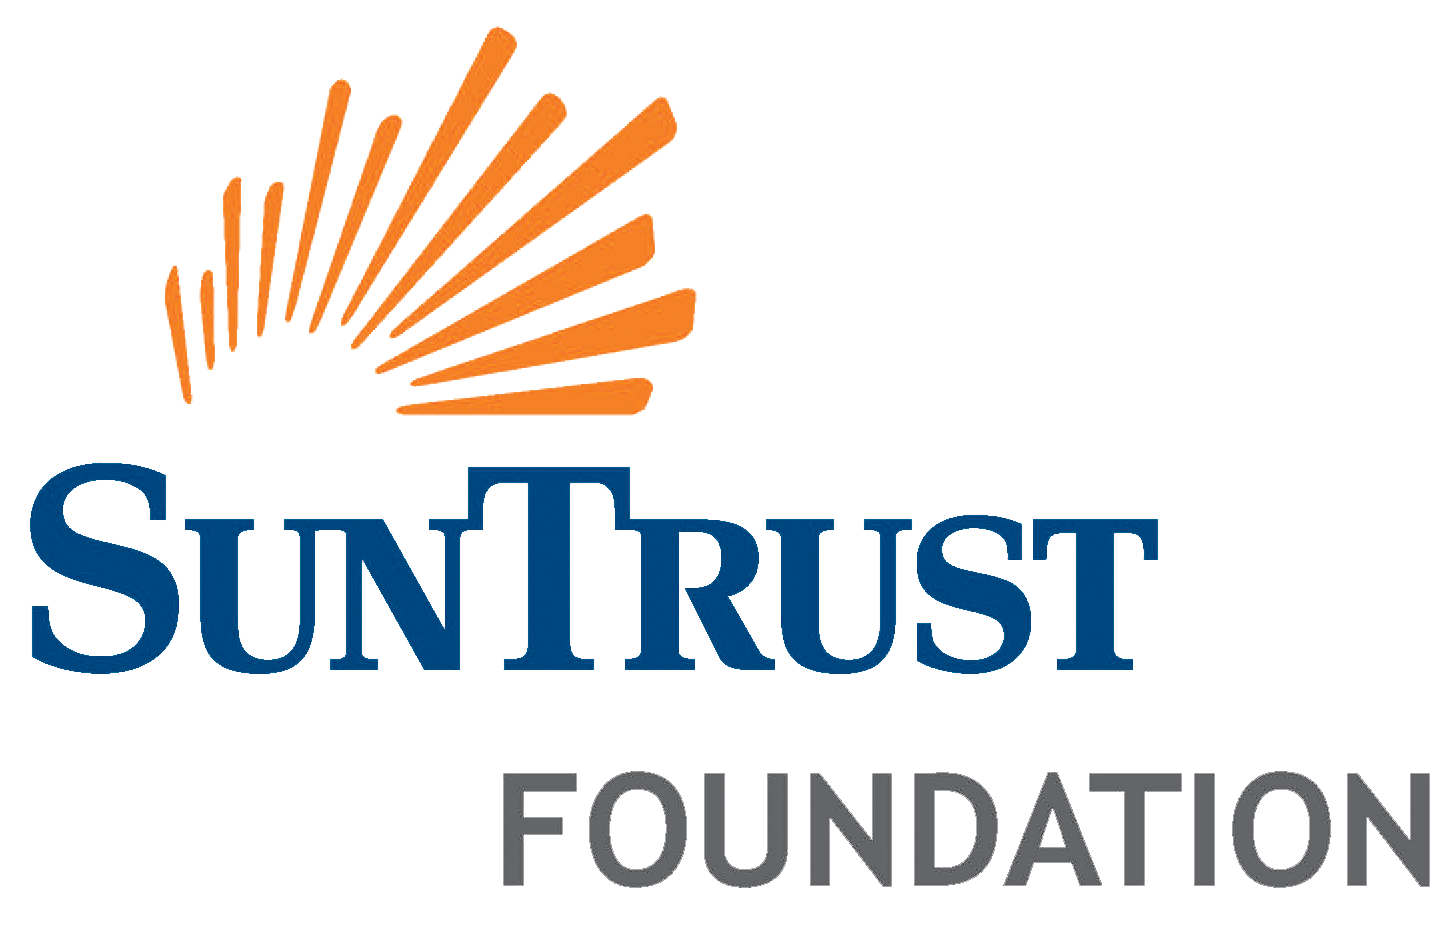 SunTrust-Foundation.png